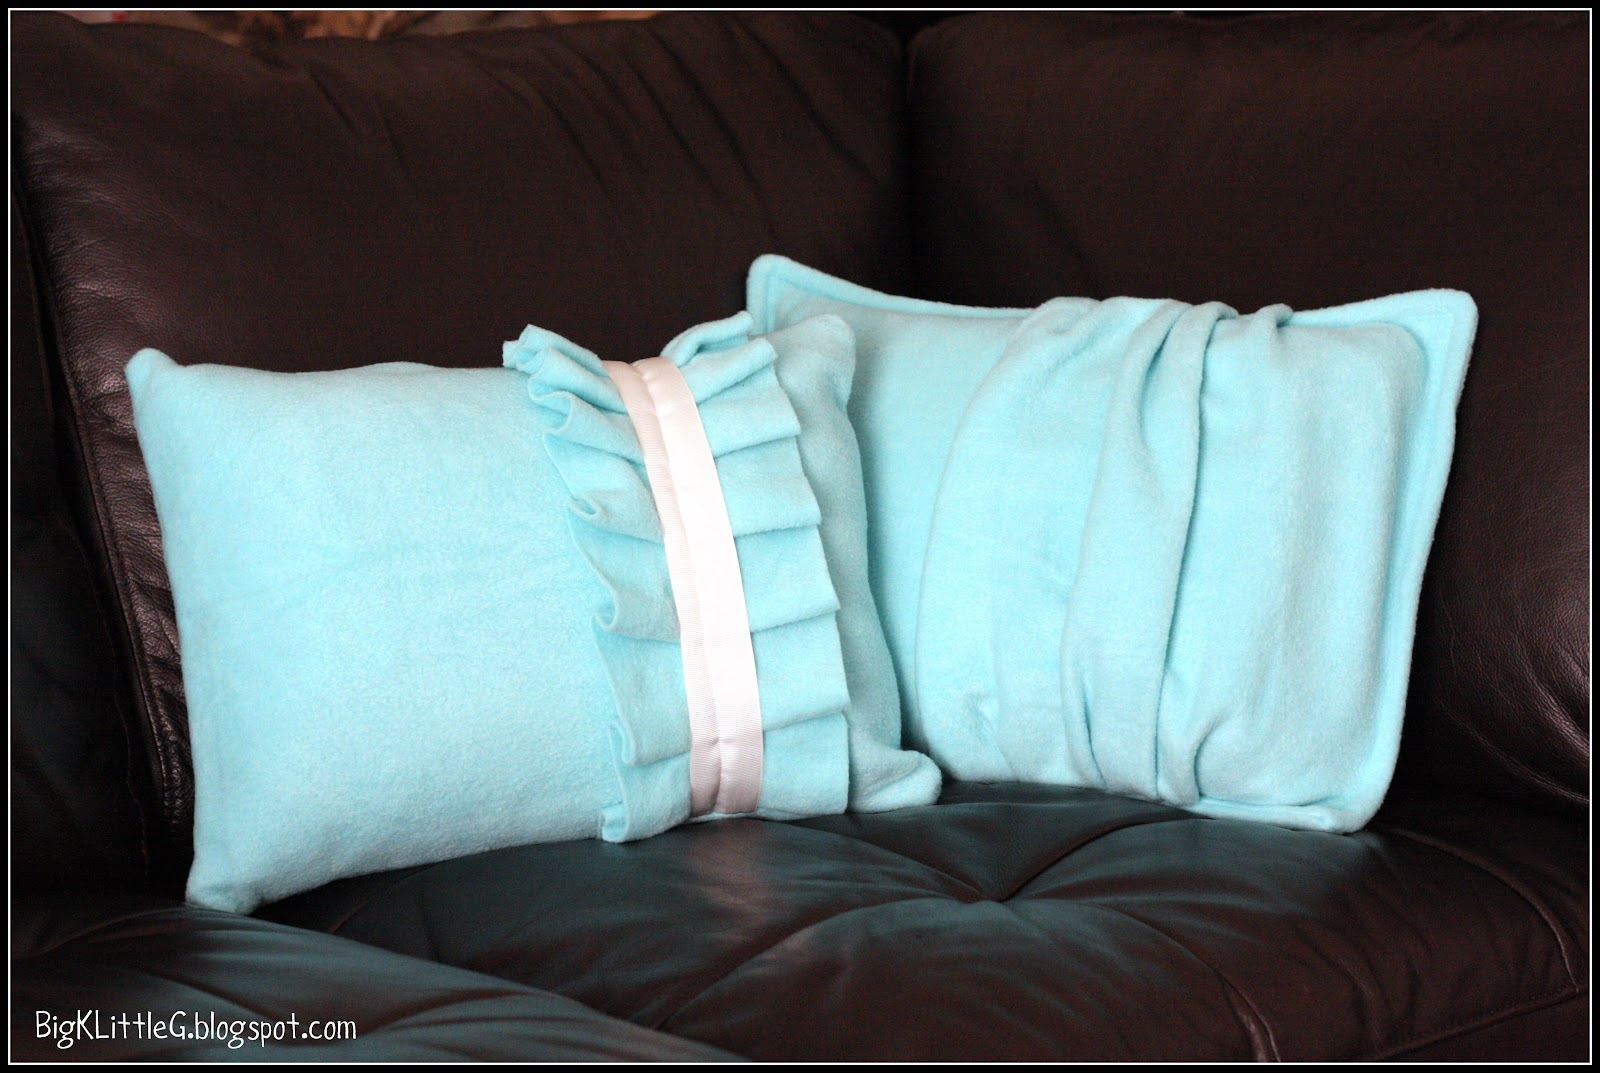 Diy Photo Throw Pillow : Big K Little G: DIY Fleece Throw Pillows